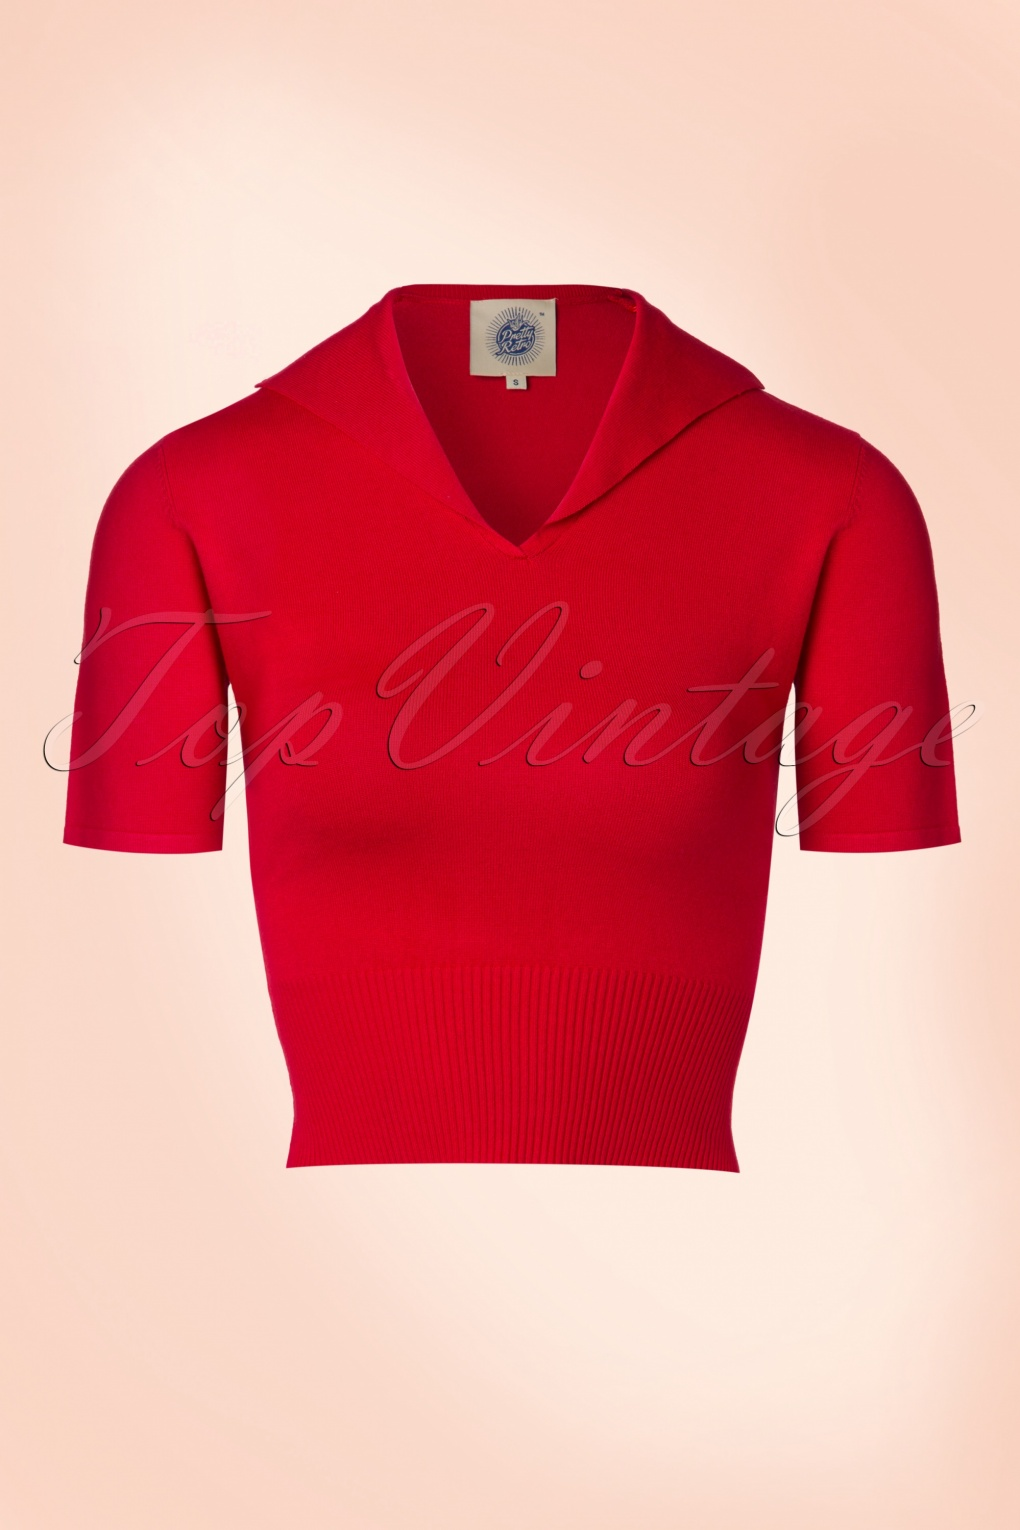 1950s Style Sweaters, Crop Cardigans, Twin Sets 50s Karin Retro Sweater in Red £54.55 AT vintagedancer.com